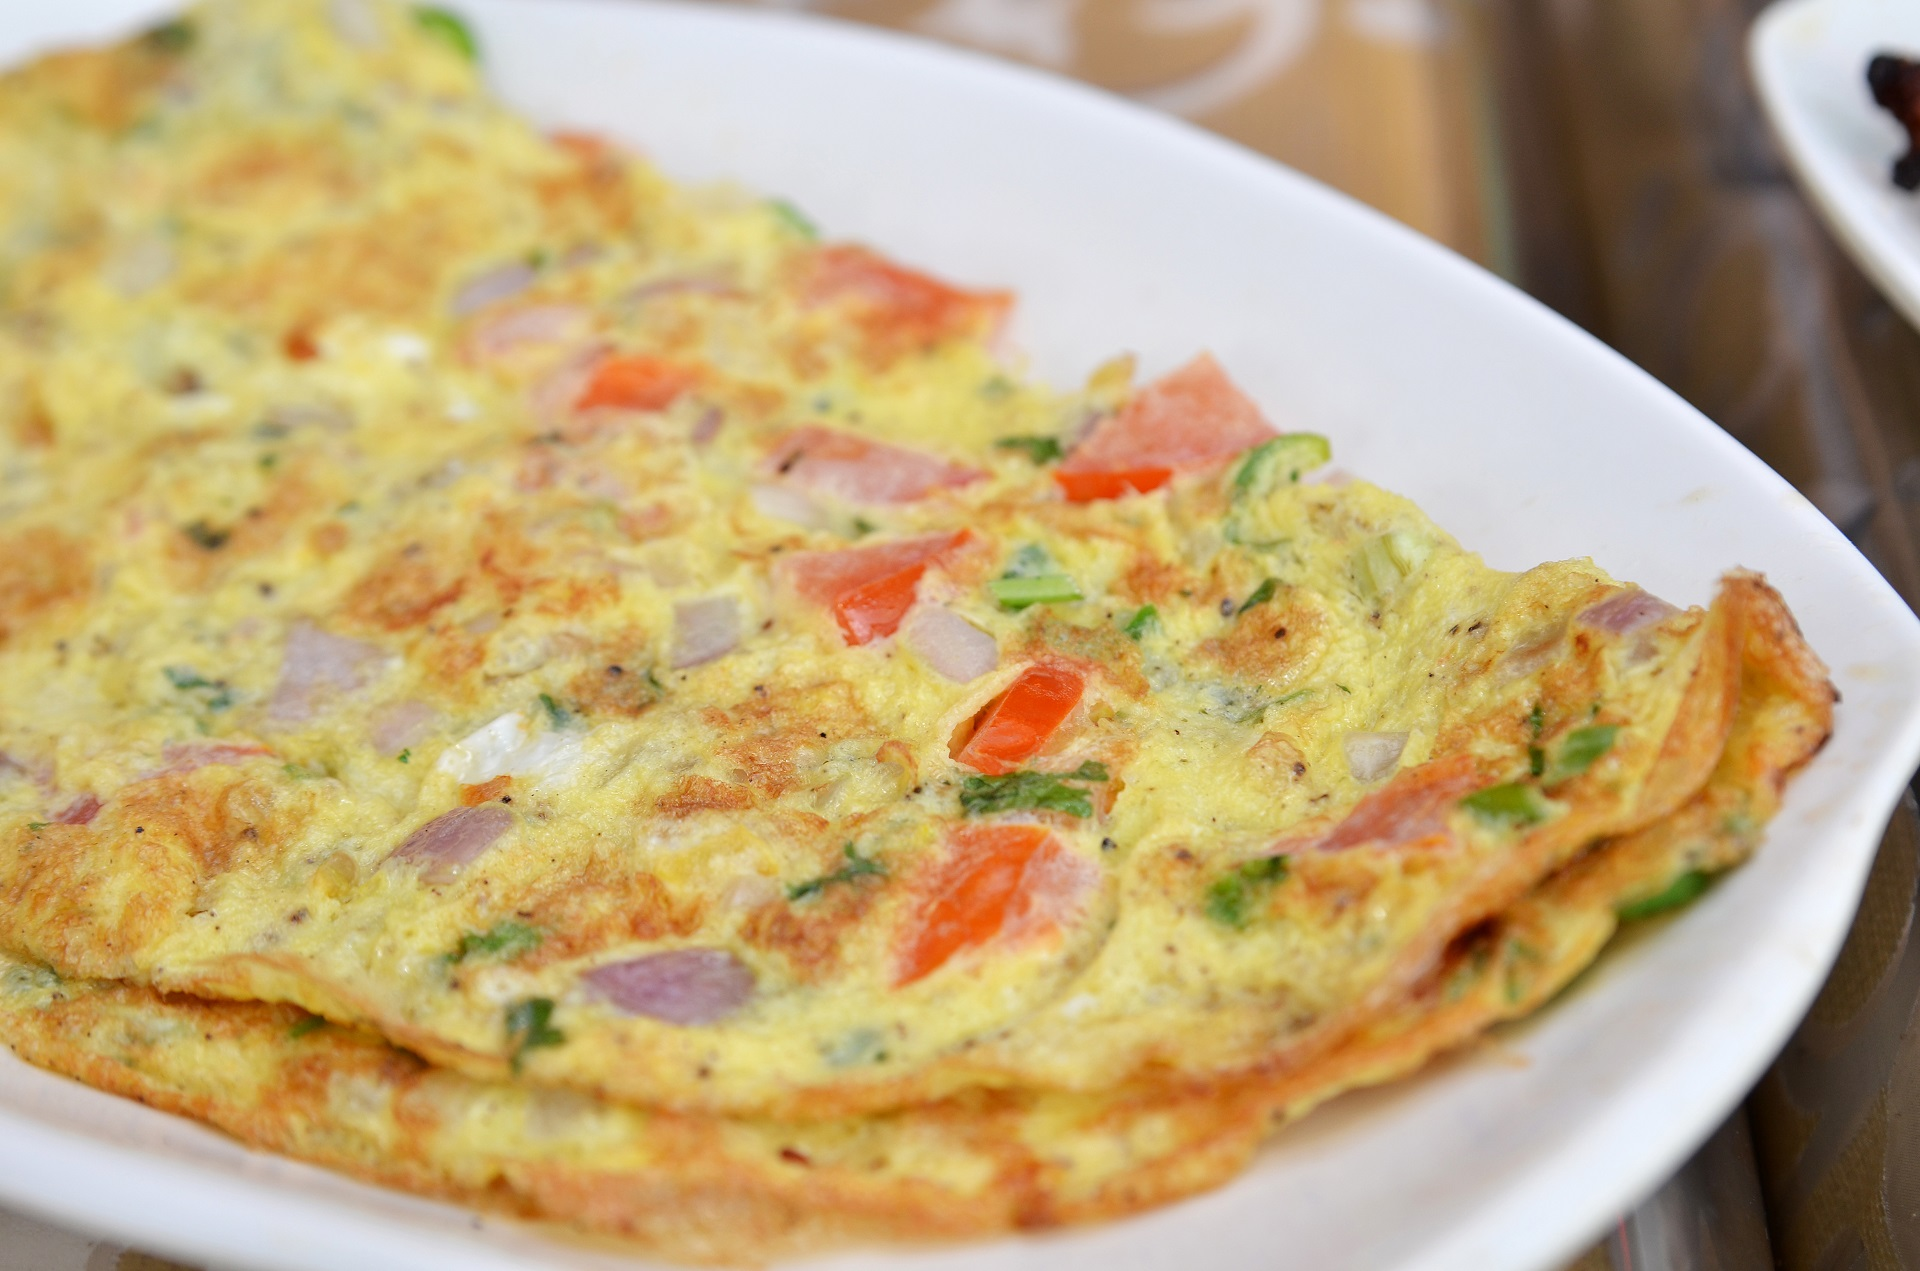 Recipe for Indian-style masala omelet